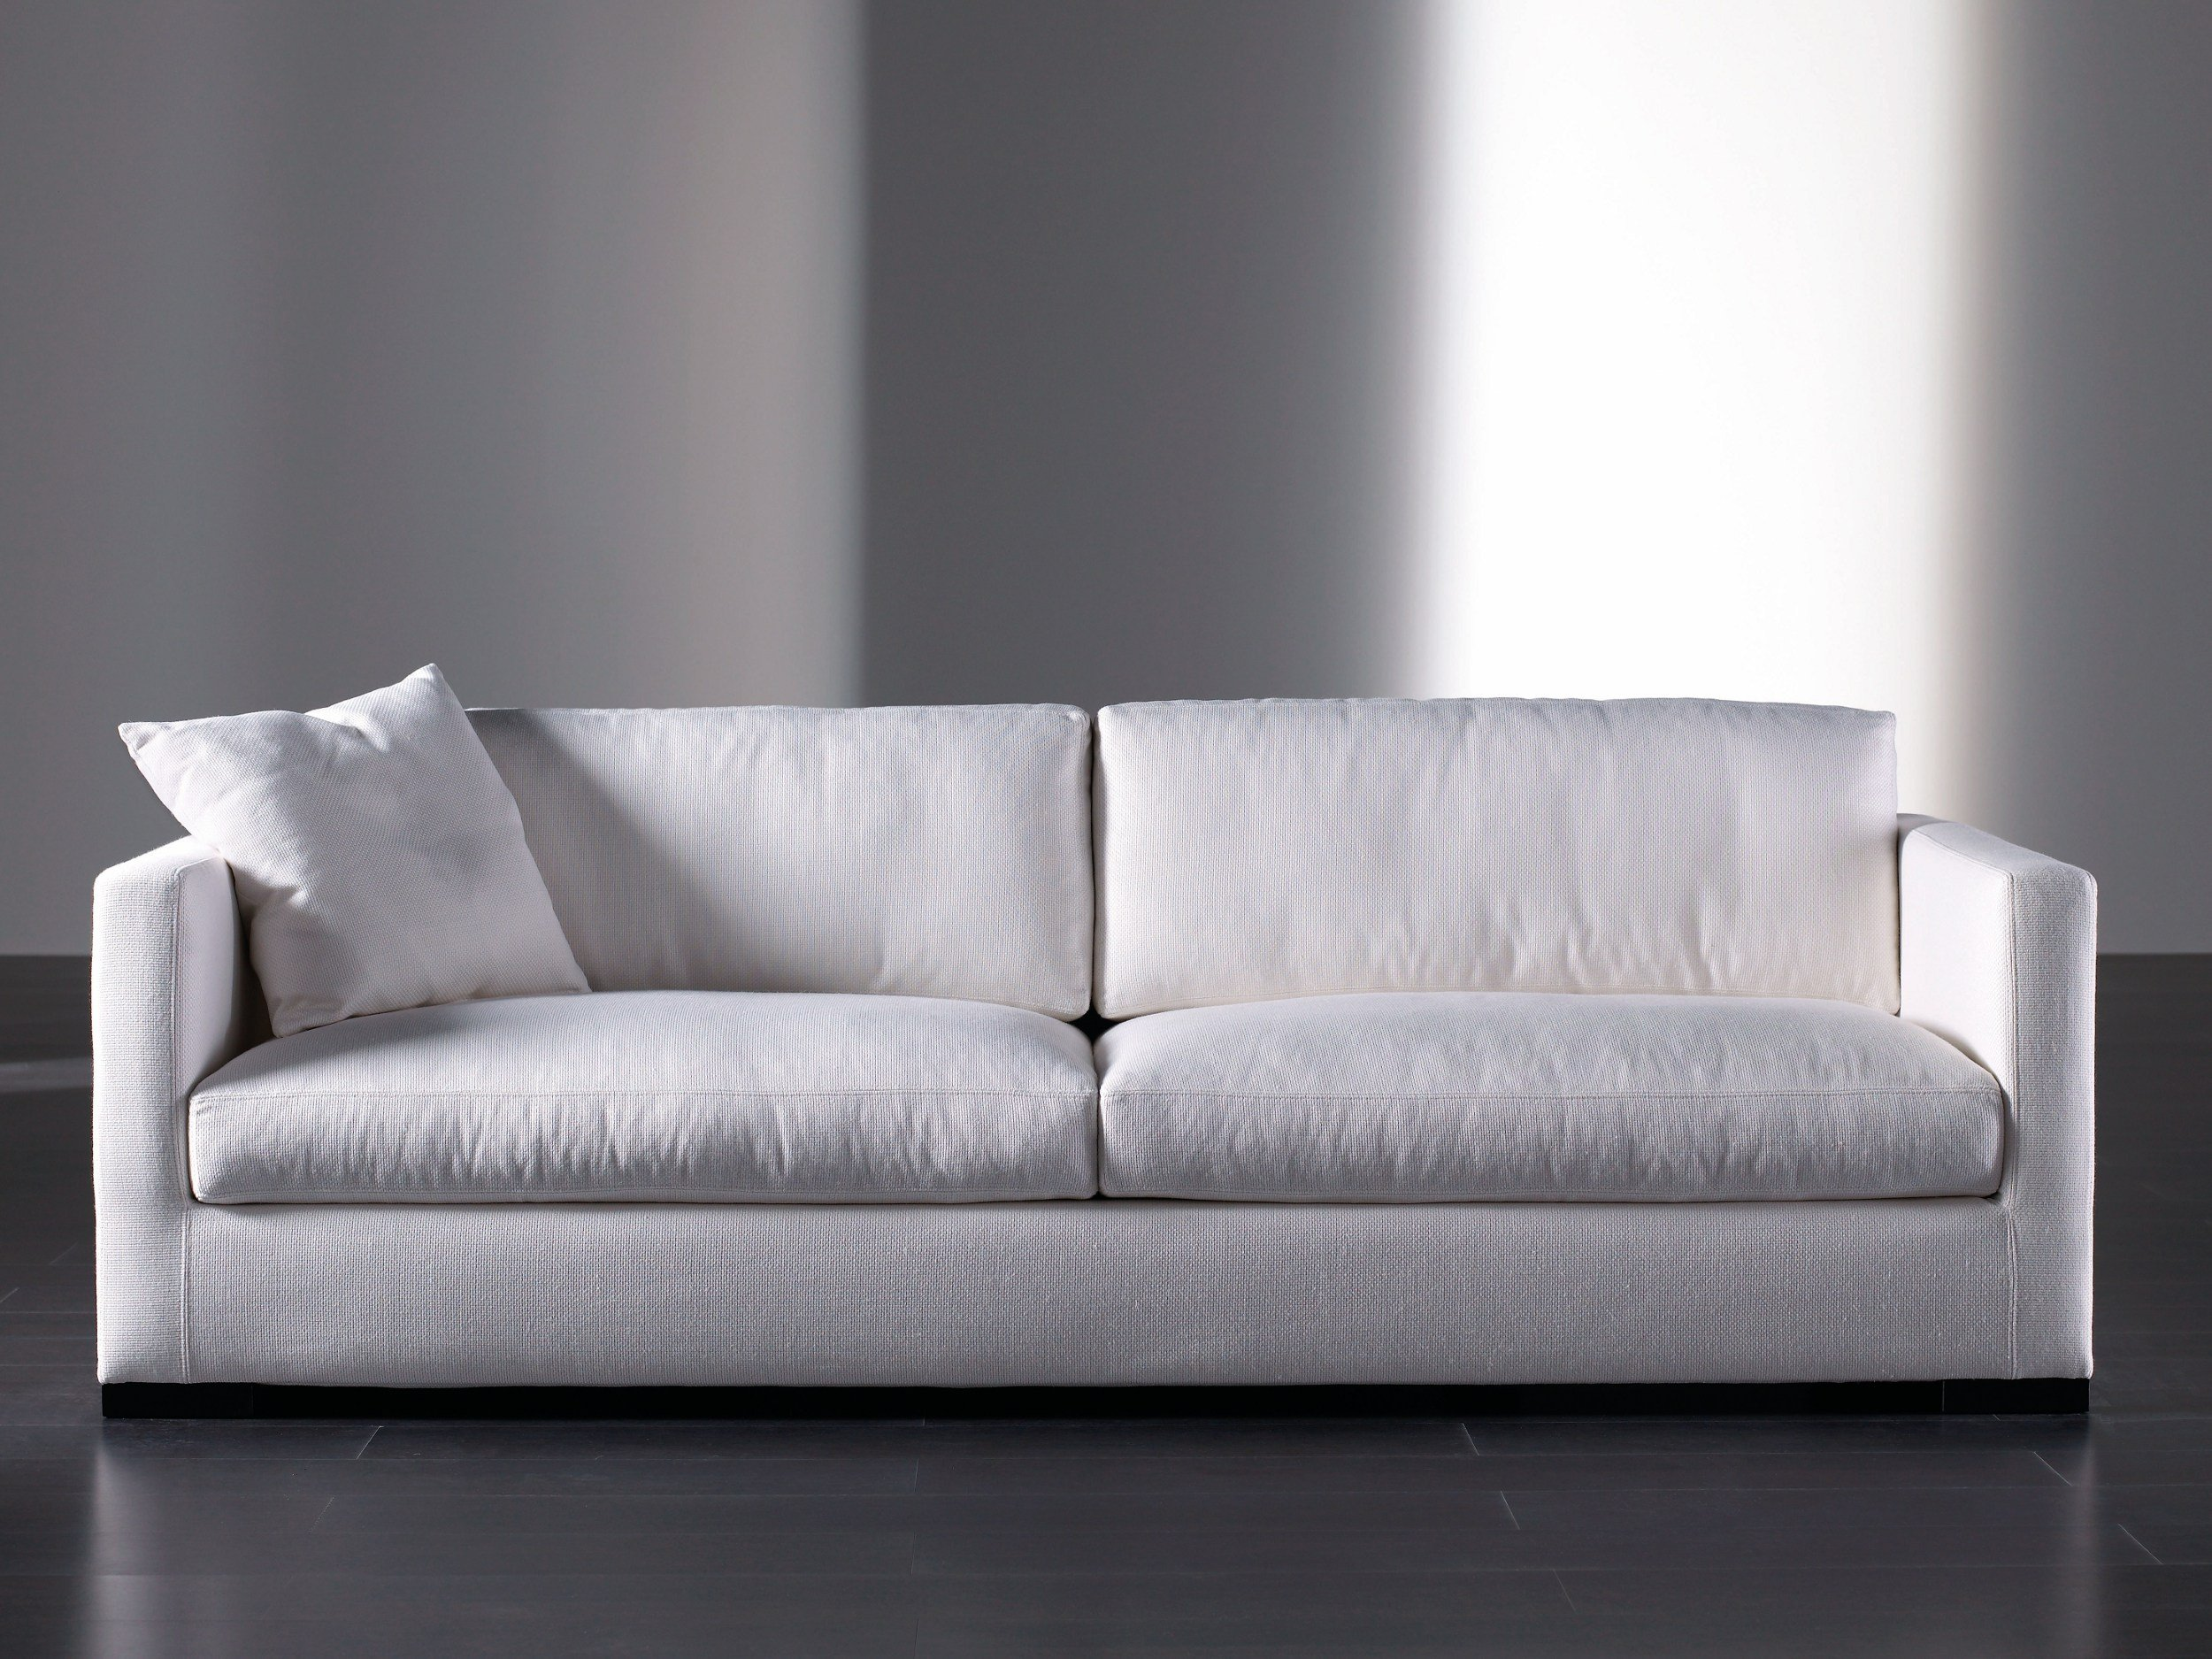 BELMON Sofa bed by Meridiani